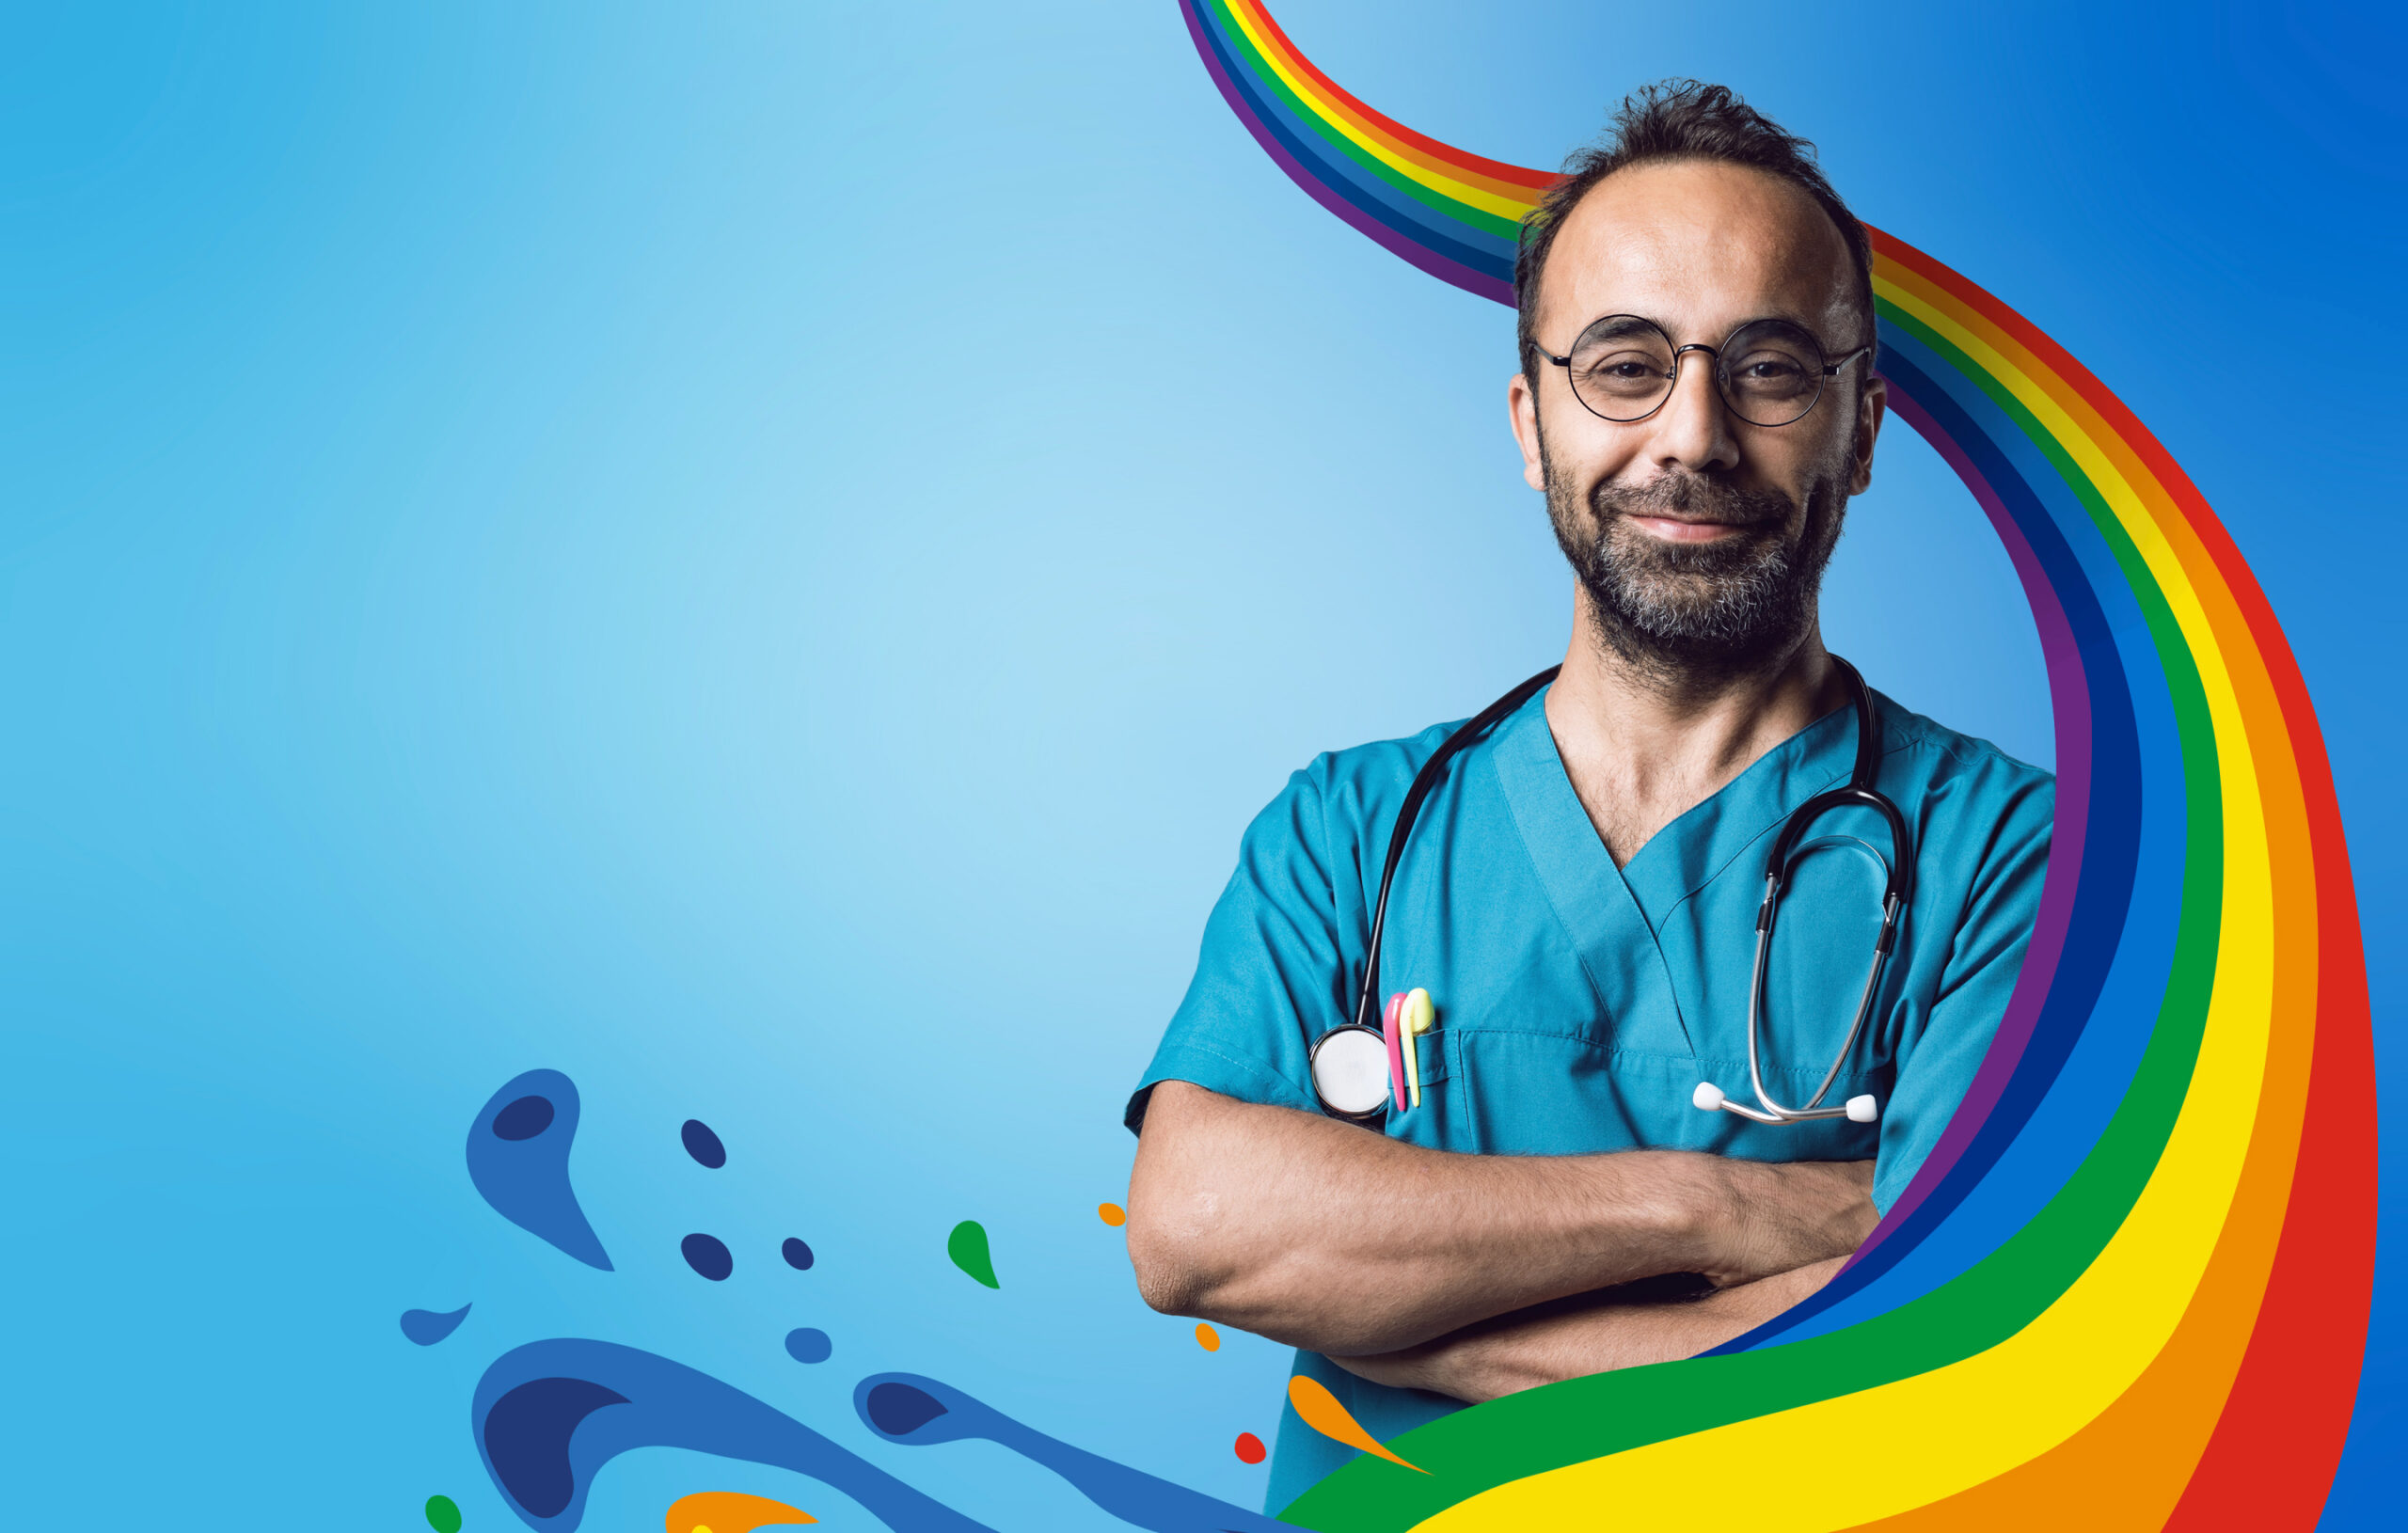 A happy NHS doctor surrounded by the NHS Big Tea Rainbow